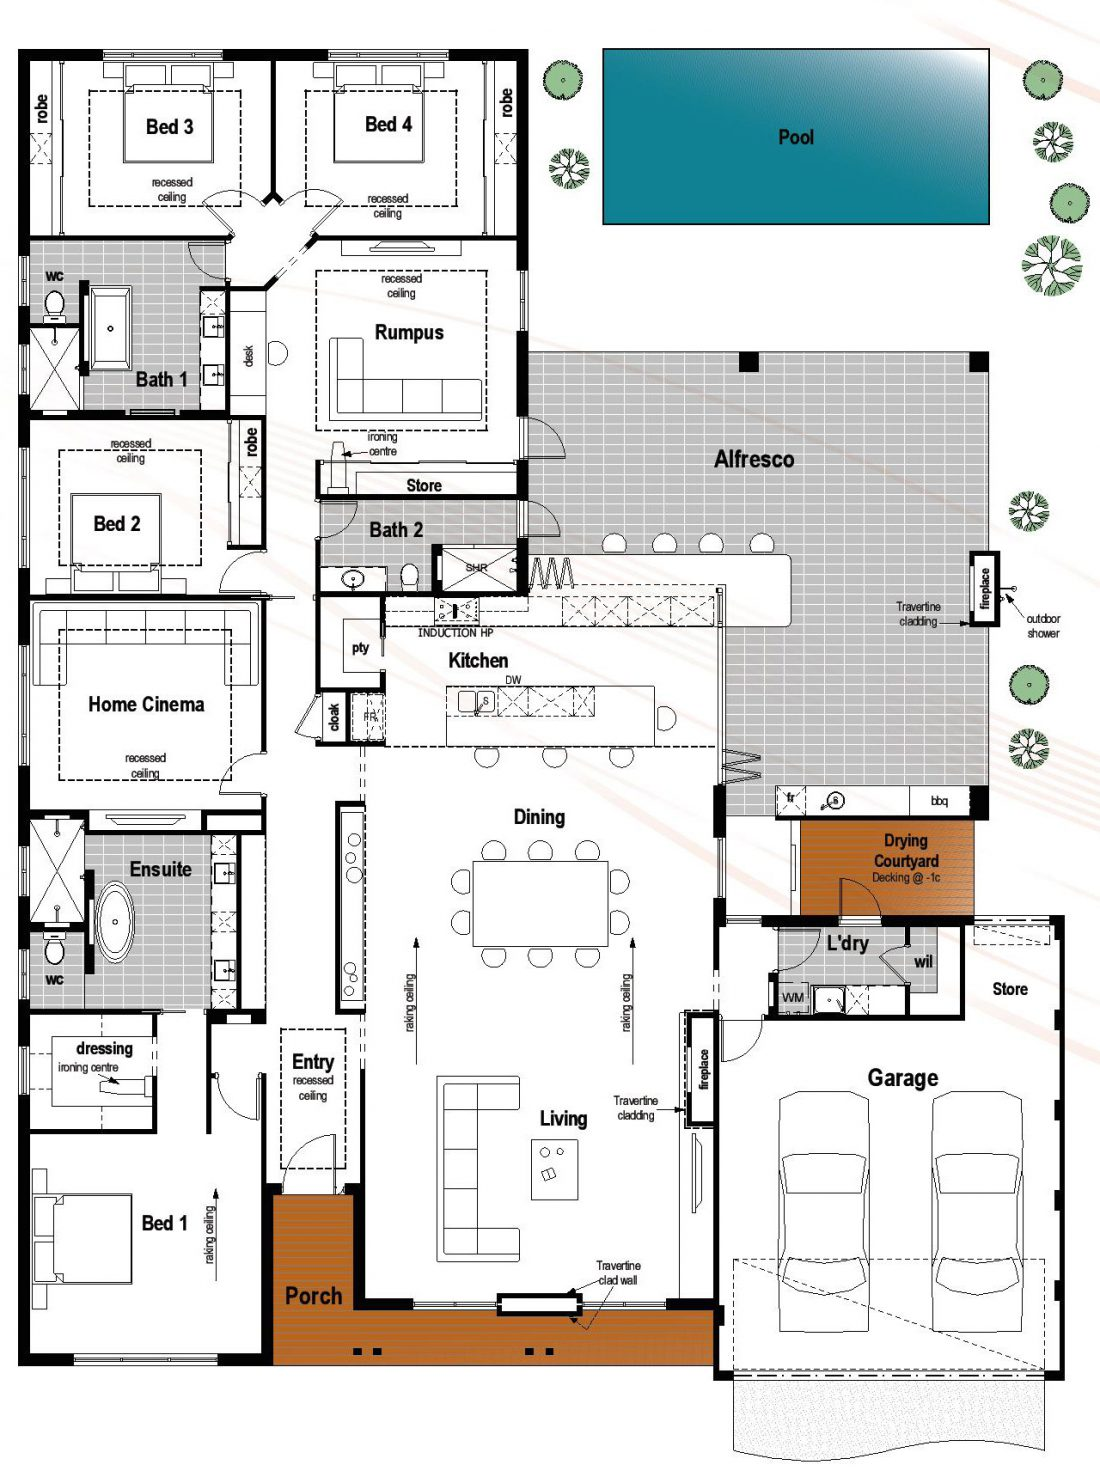 Floor plan friday 4 bedroom 3 bathroom with modern for Typical house design